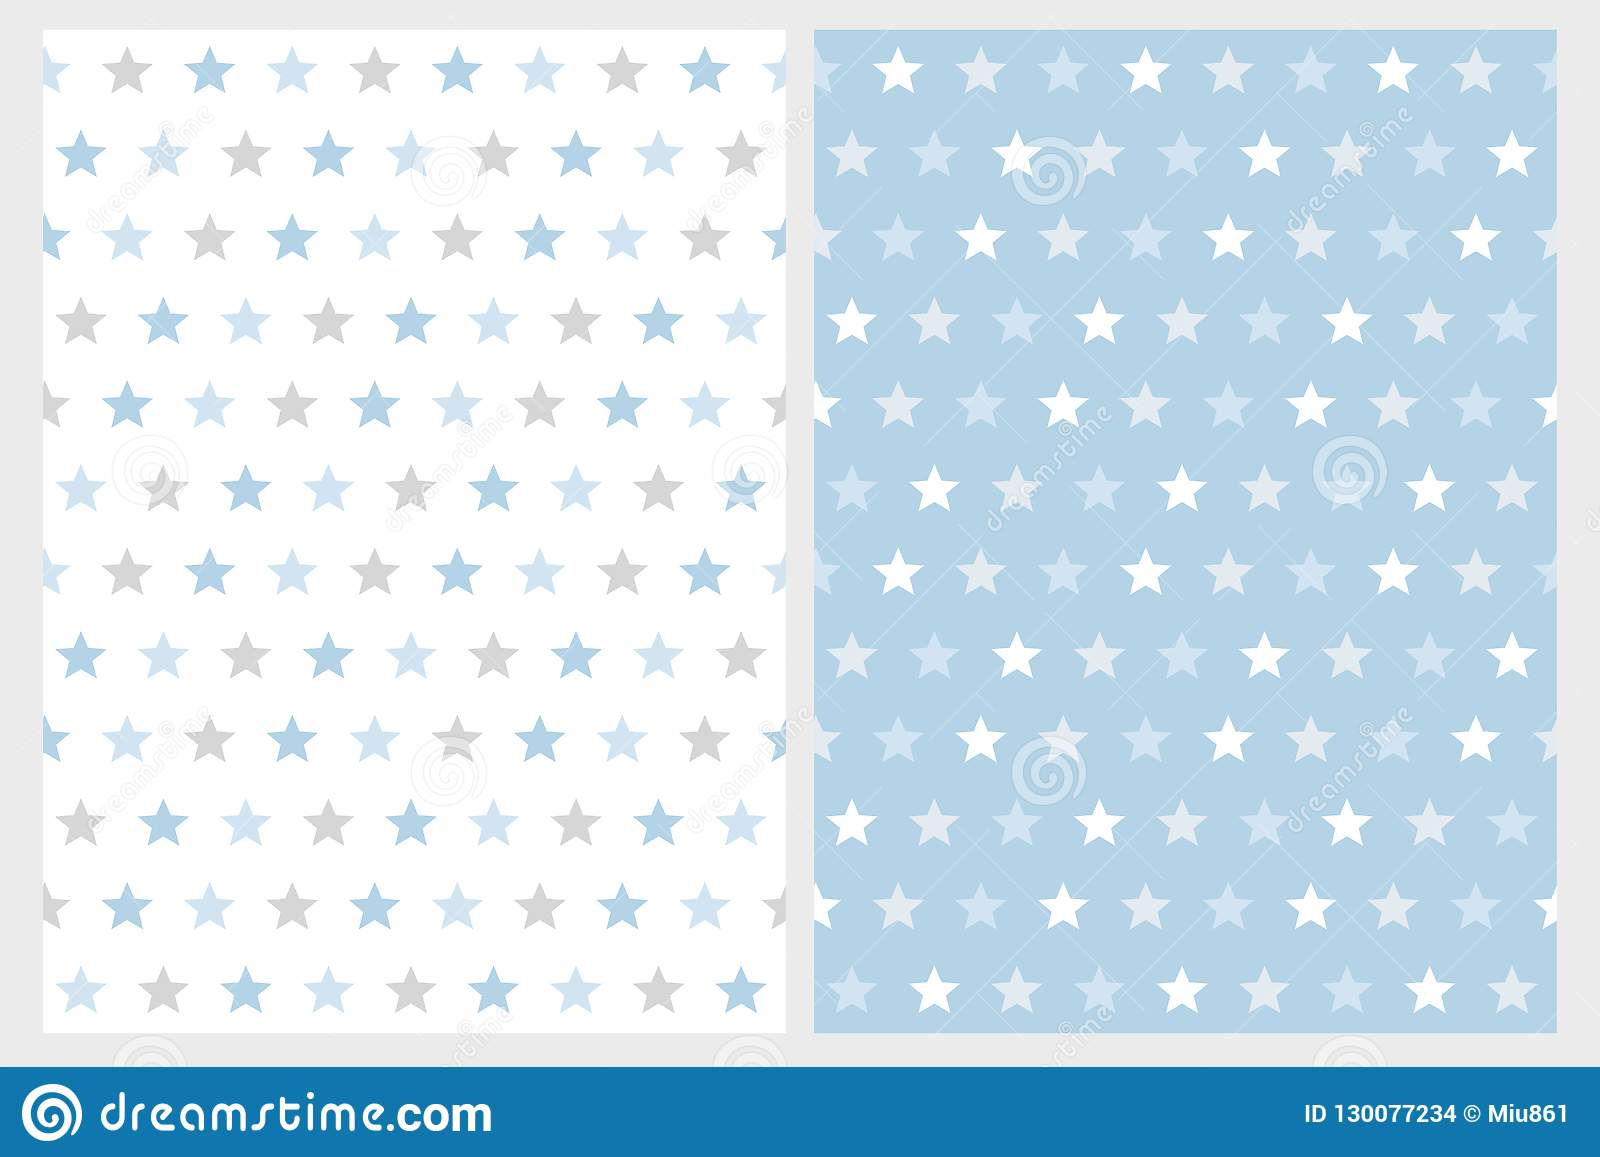 Abstract Star Vector Patterns  White, Light Gray And Blue